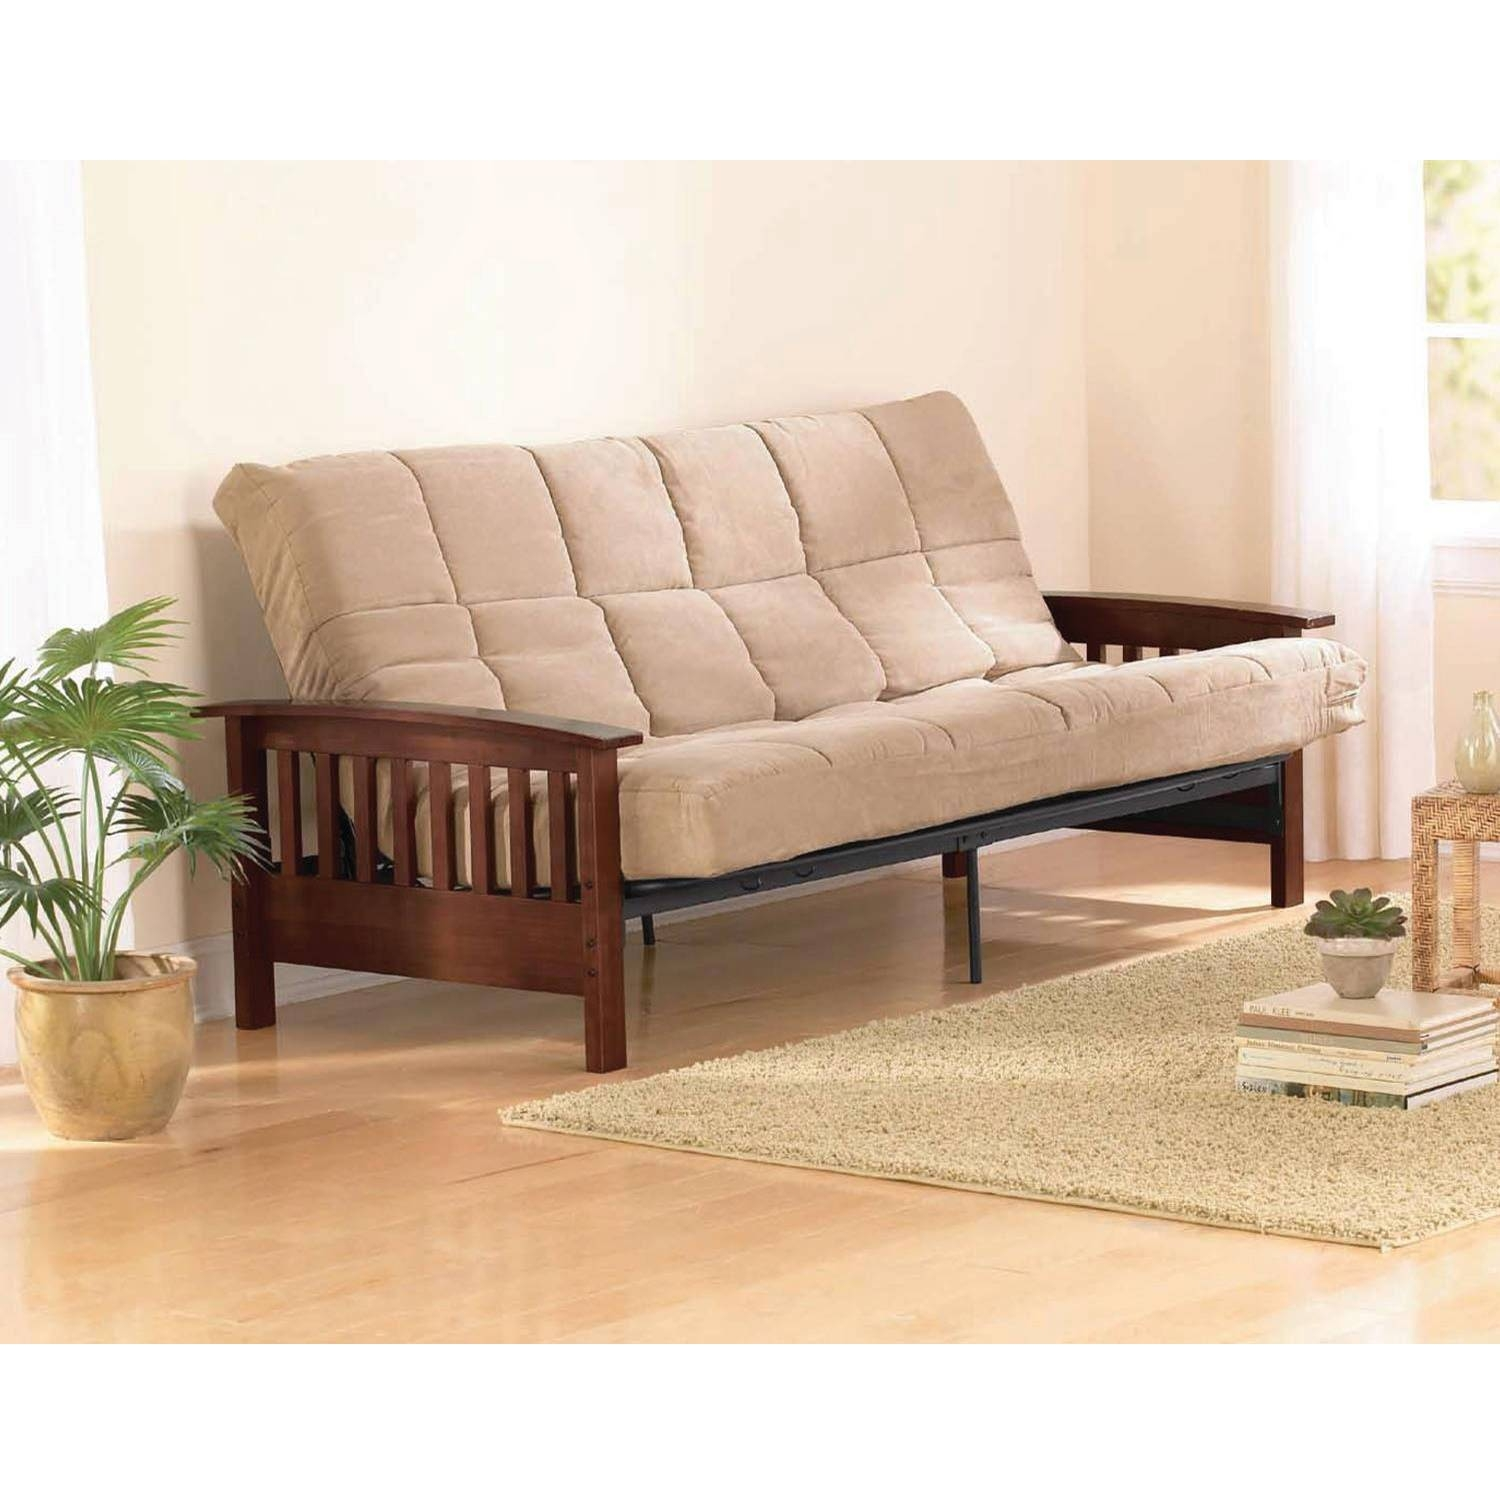 Furniture: Futon Mattress At Target | Target Pull Out Couch intended for Target Couch Beds (Image 8 of 15)